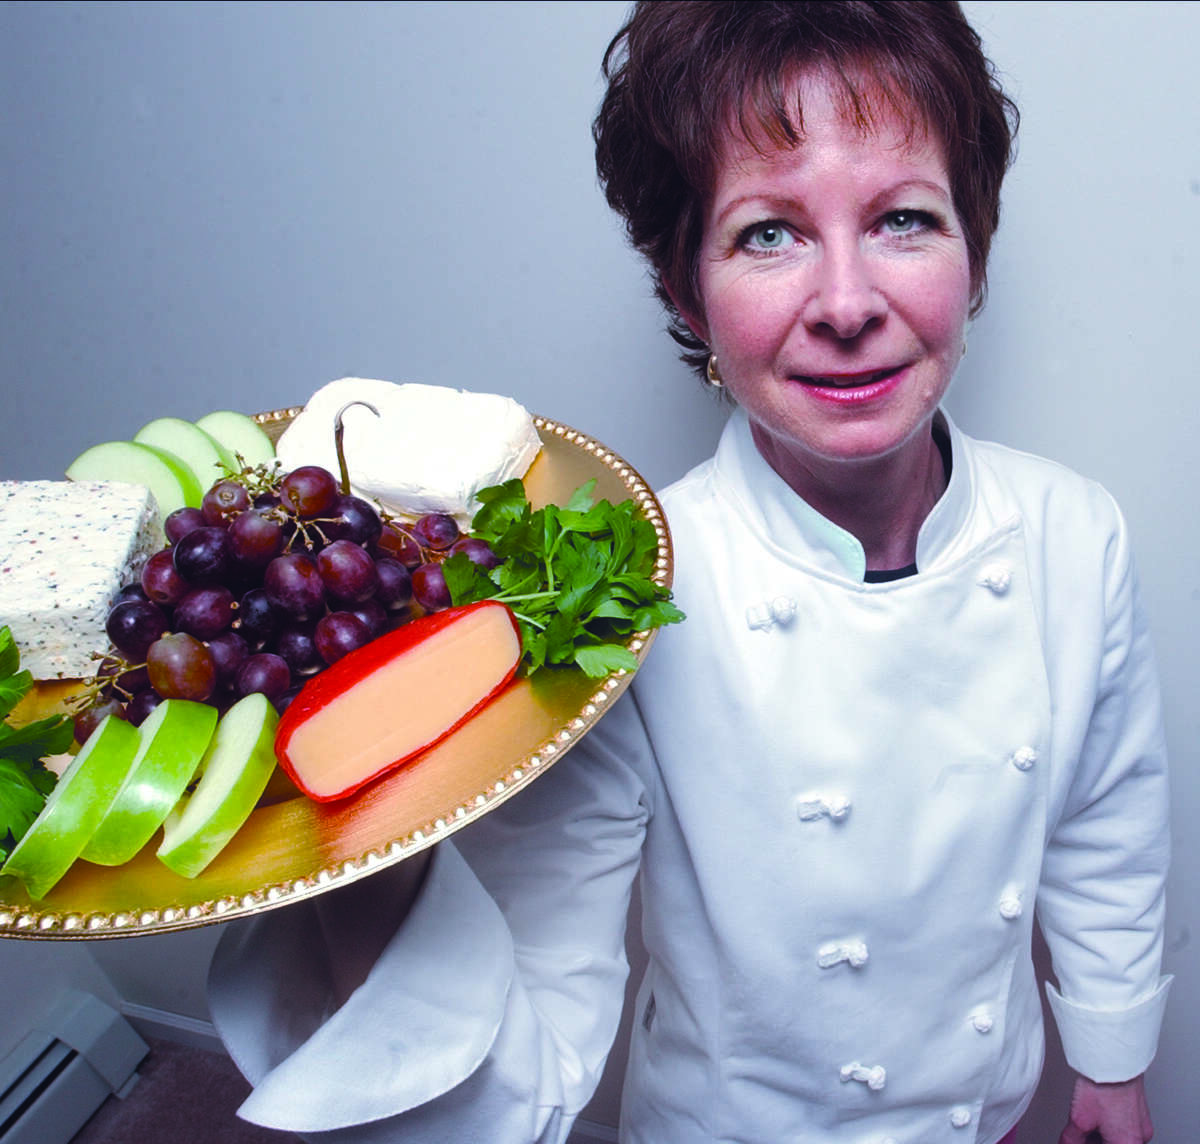 Ruth L'Hommedieu, of Cromwell, founded and runs Savory Thymes, a personal chef service......photo by Sarah Schultz.....3.30.05